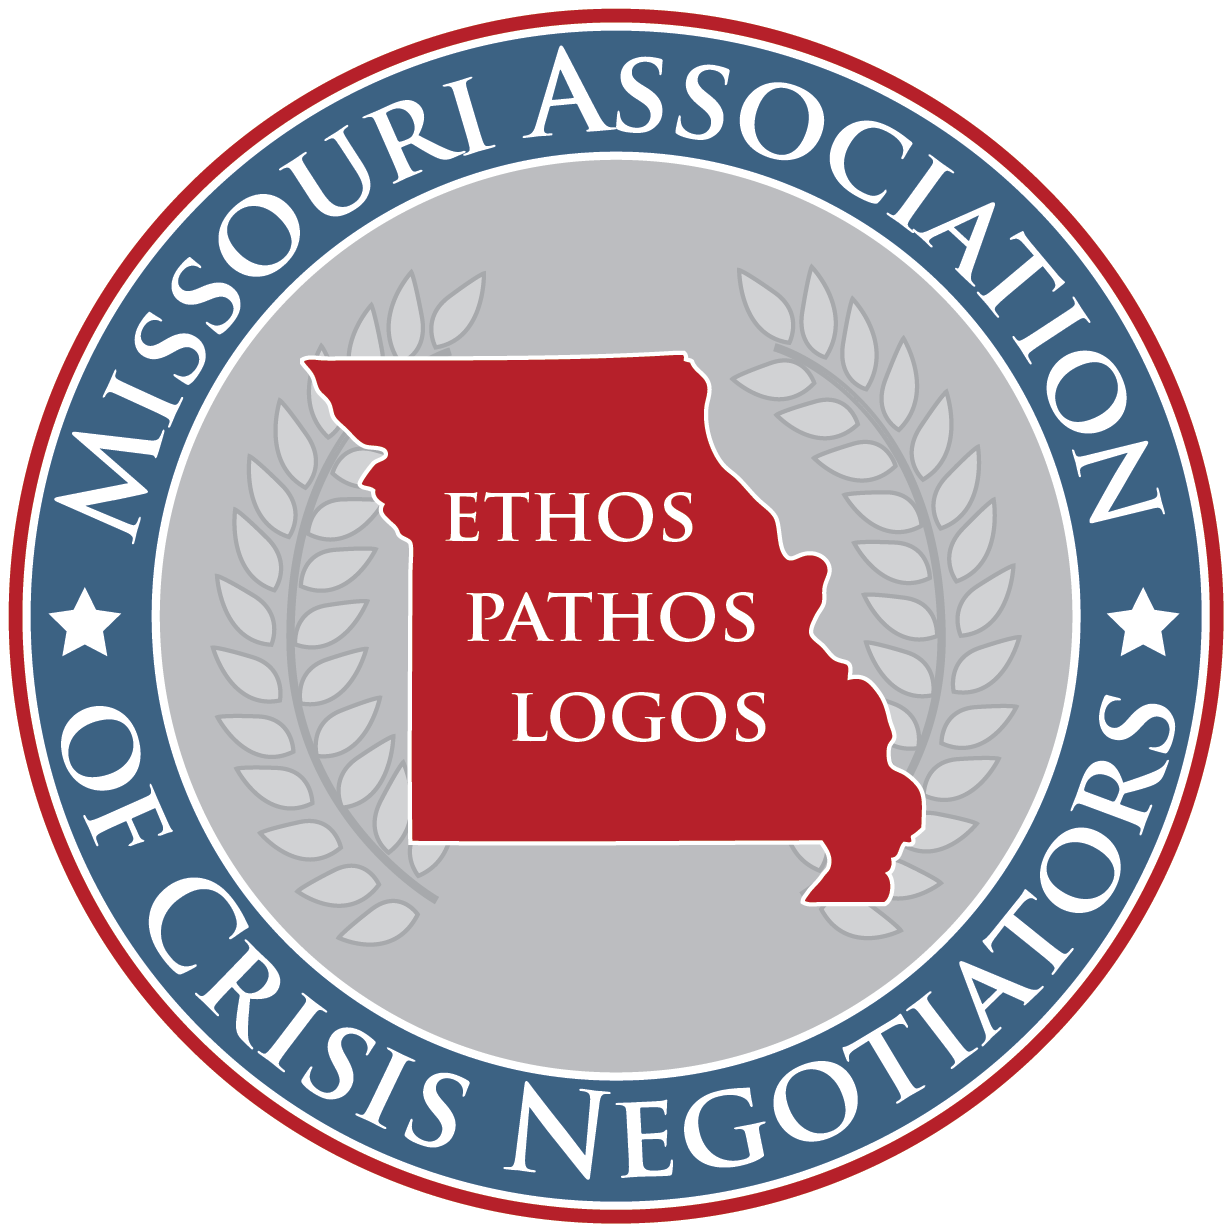 Missouri Association of Crisis Negotiatiors